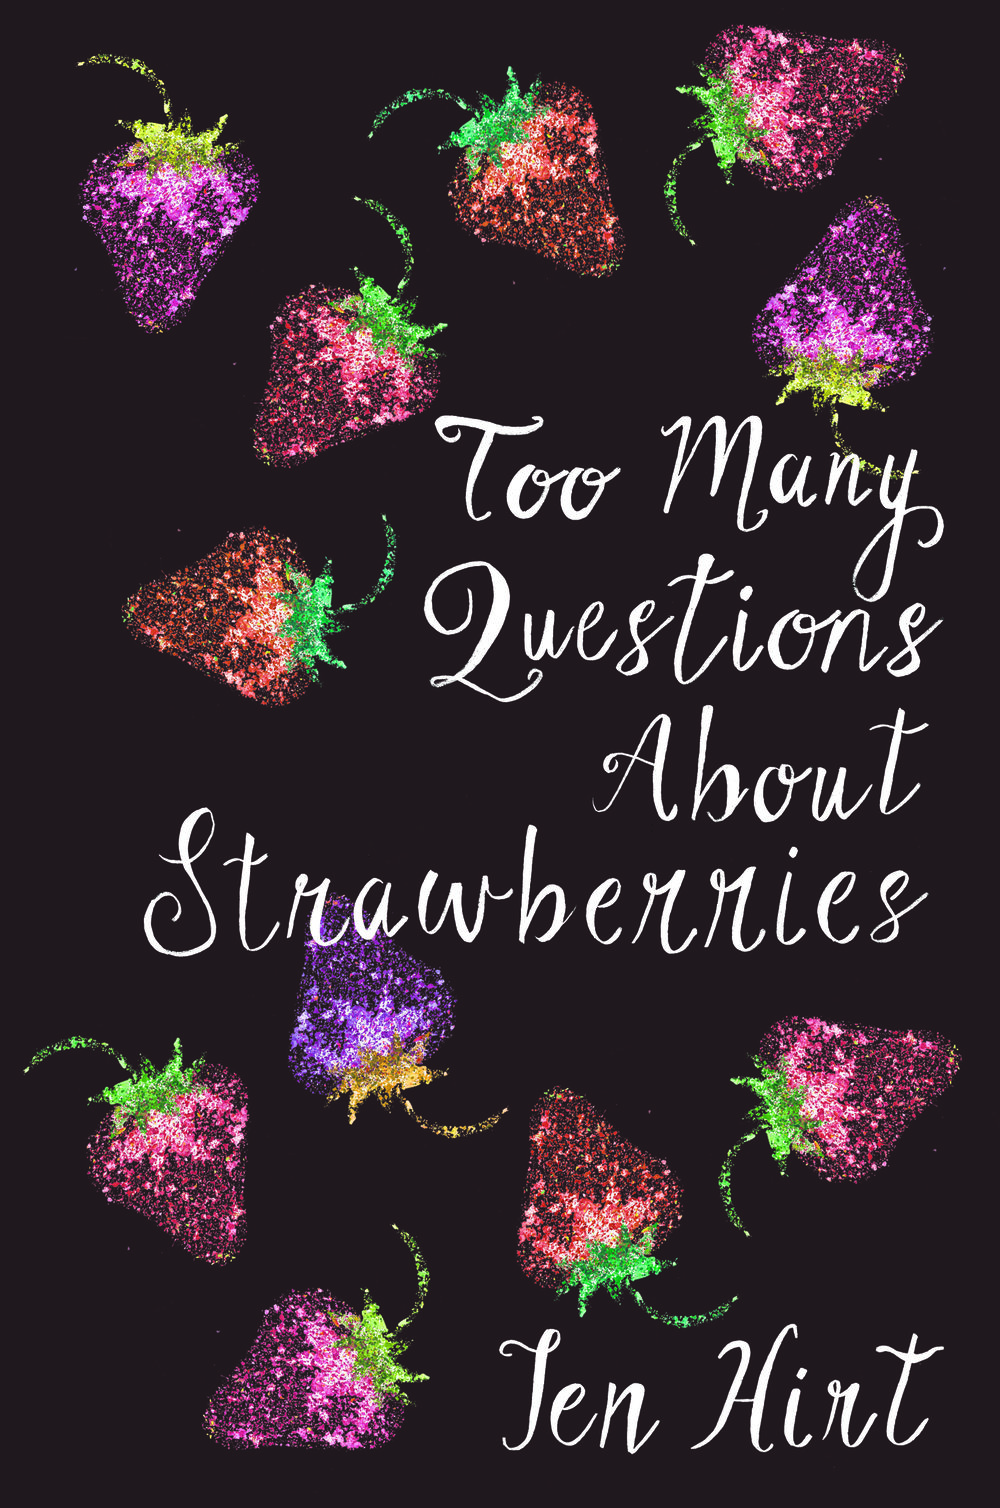 "Too many questions about strawberries poetry by Jen Hirt - Release Date November 13th""In Too Many Questions About Strawberries, Jen Hirt is a horticulturalist of words, joining joy and grief, grafting prose to poetry, and cultivating new growth from the rootstock of memory. Like vines, her sentences twist and climb, enlivening her poems with surprising turns. Like seeds carefully placed and tended, the words in each poem unfurl with breathless abundance. As her poems wrestle with change, Hirt celebrates all that survives. Unpredictable and vibrant, the poems in this chapbook are ripe with tender insight, playfulness, and persistence.""Stephanie Lenox, author of The Business"